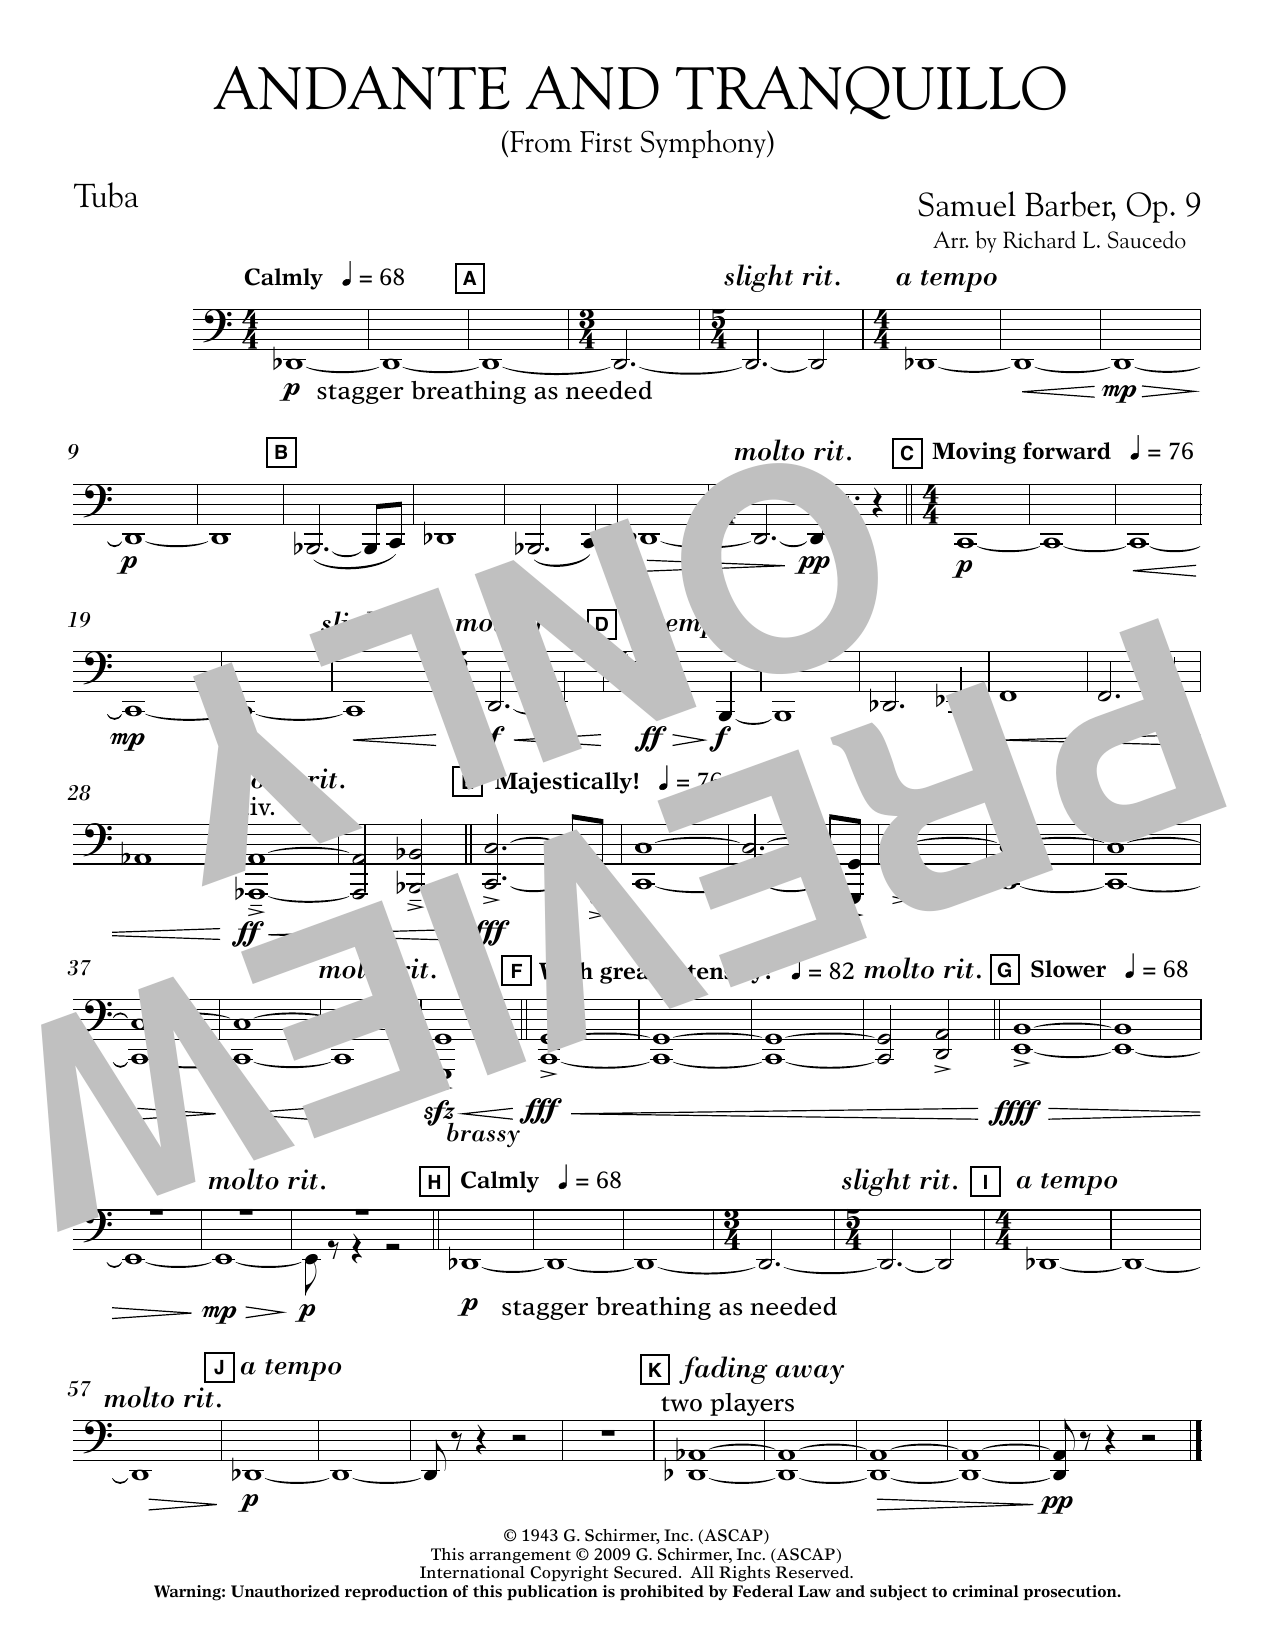 Andante and Tranquillo (from First Symphony) - Tuba